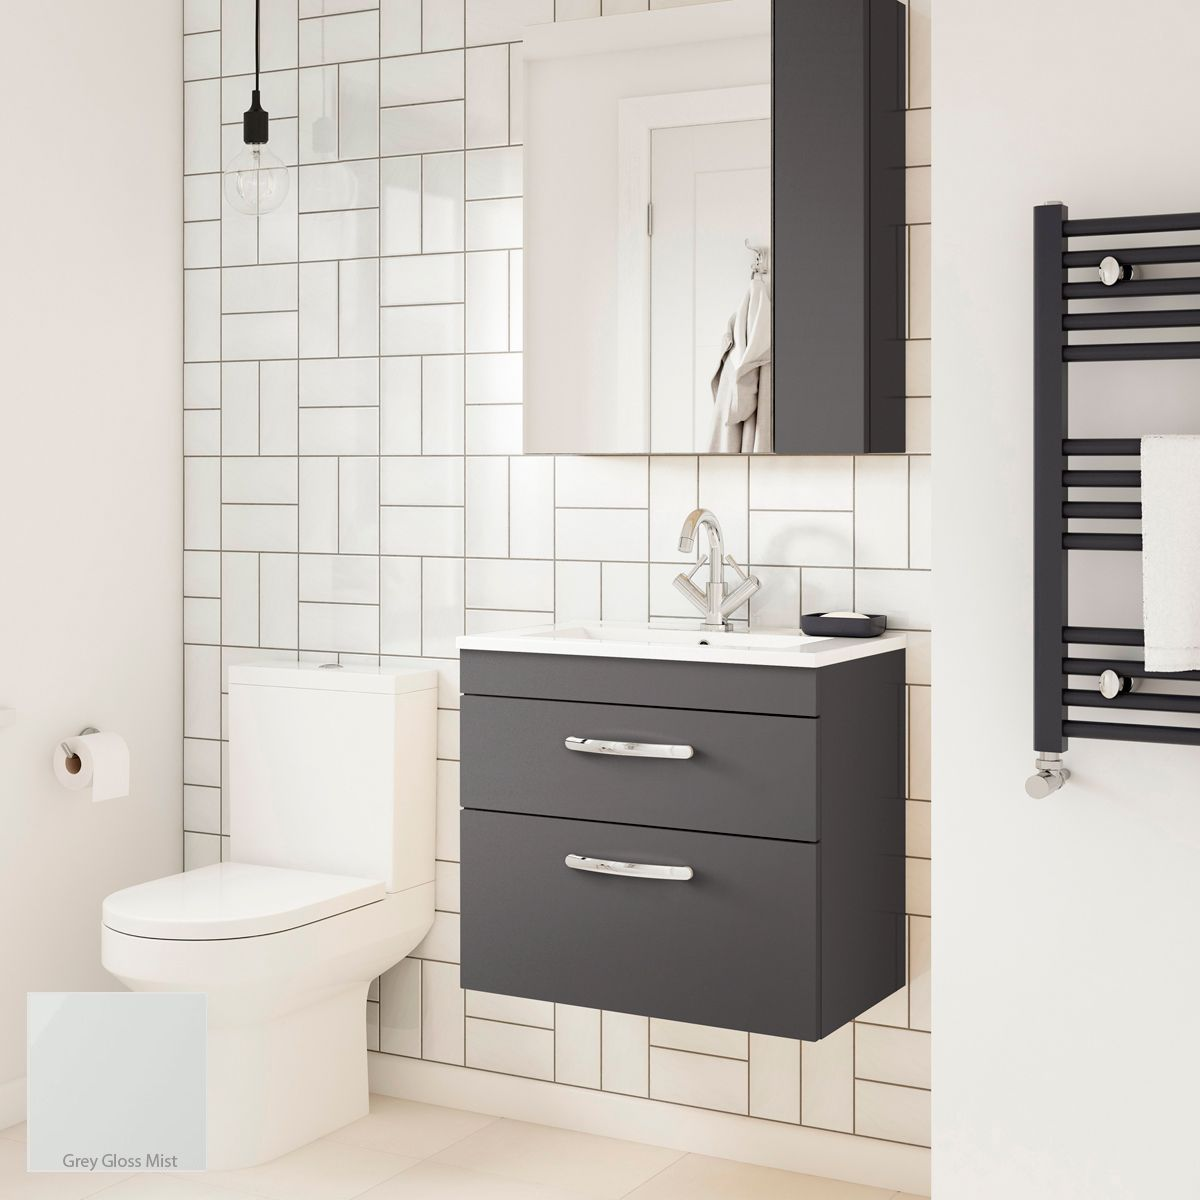 Nuie Athena Gloss Grey Mist 2 Drawer Wall Hung Vanity Unit 600mm